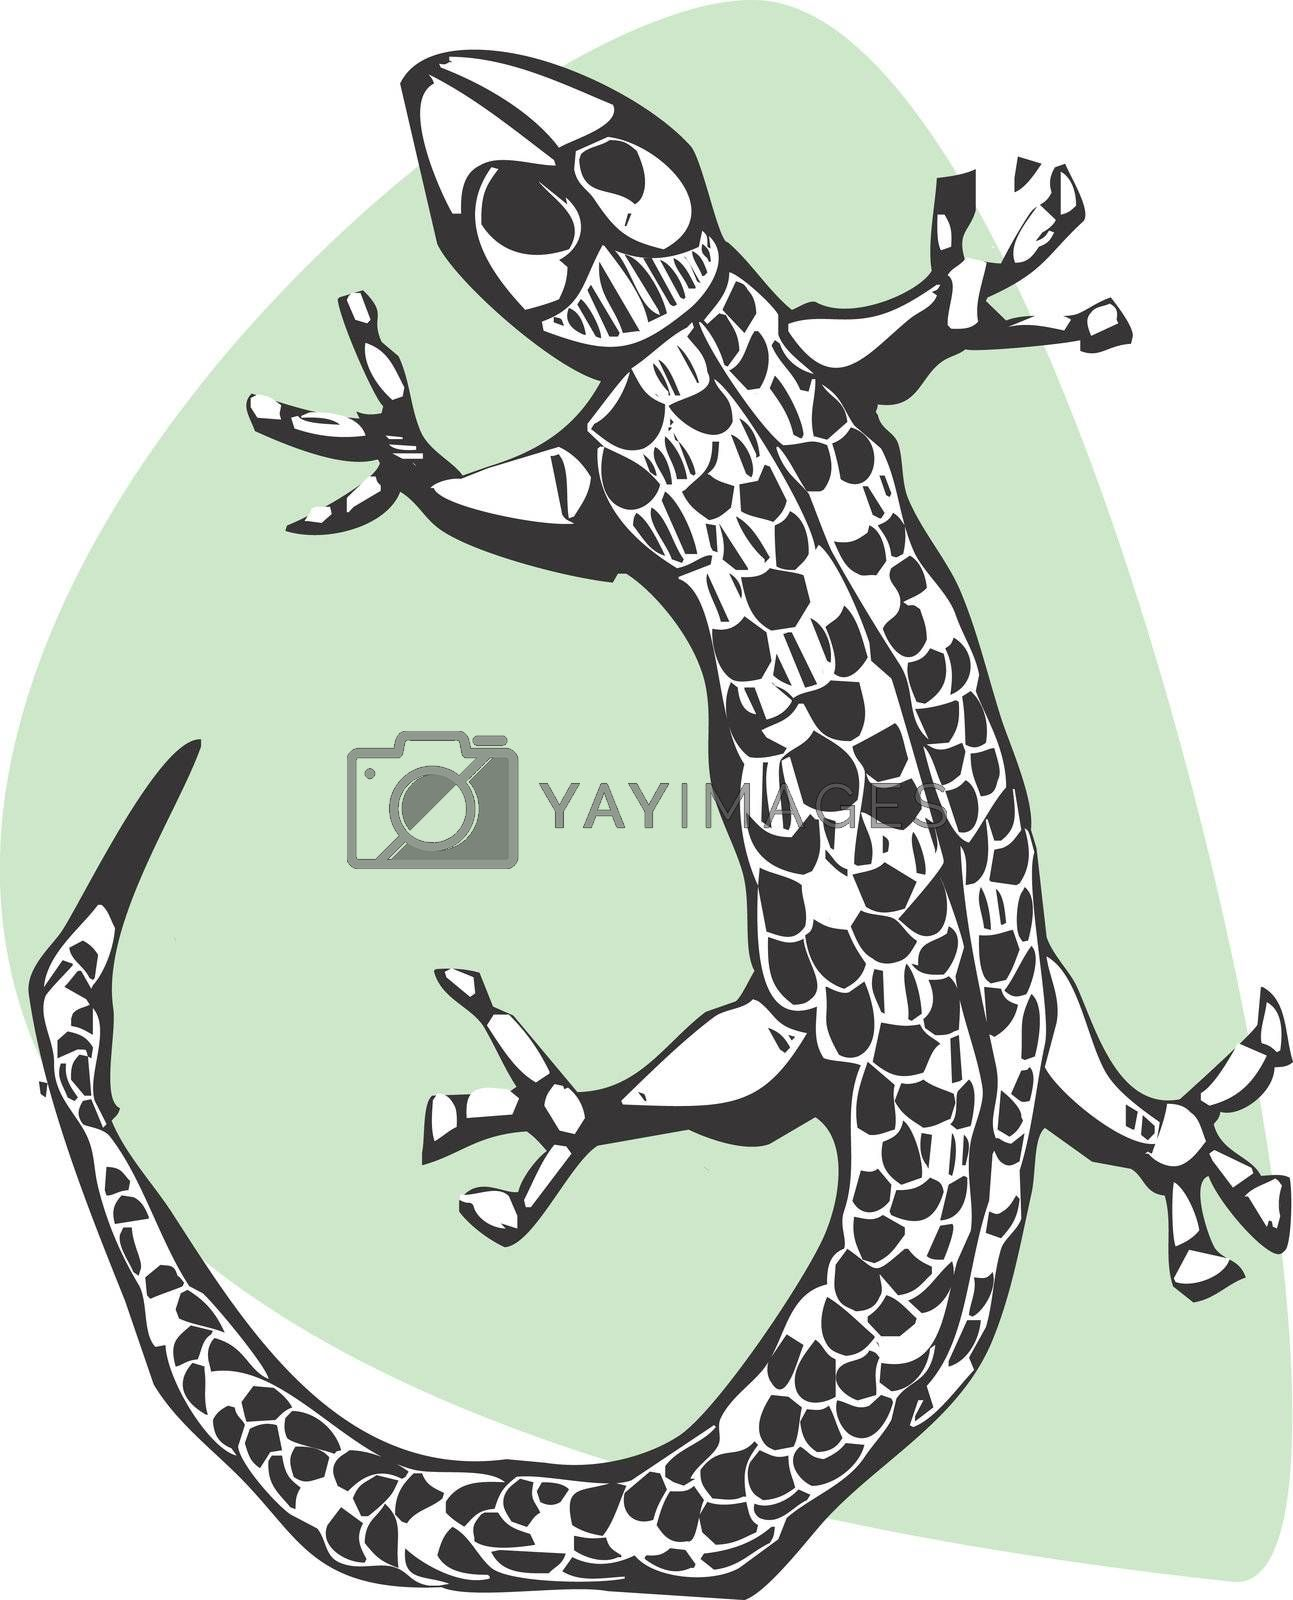 A simple lizard done in a woodcut style.